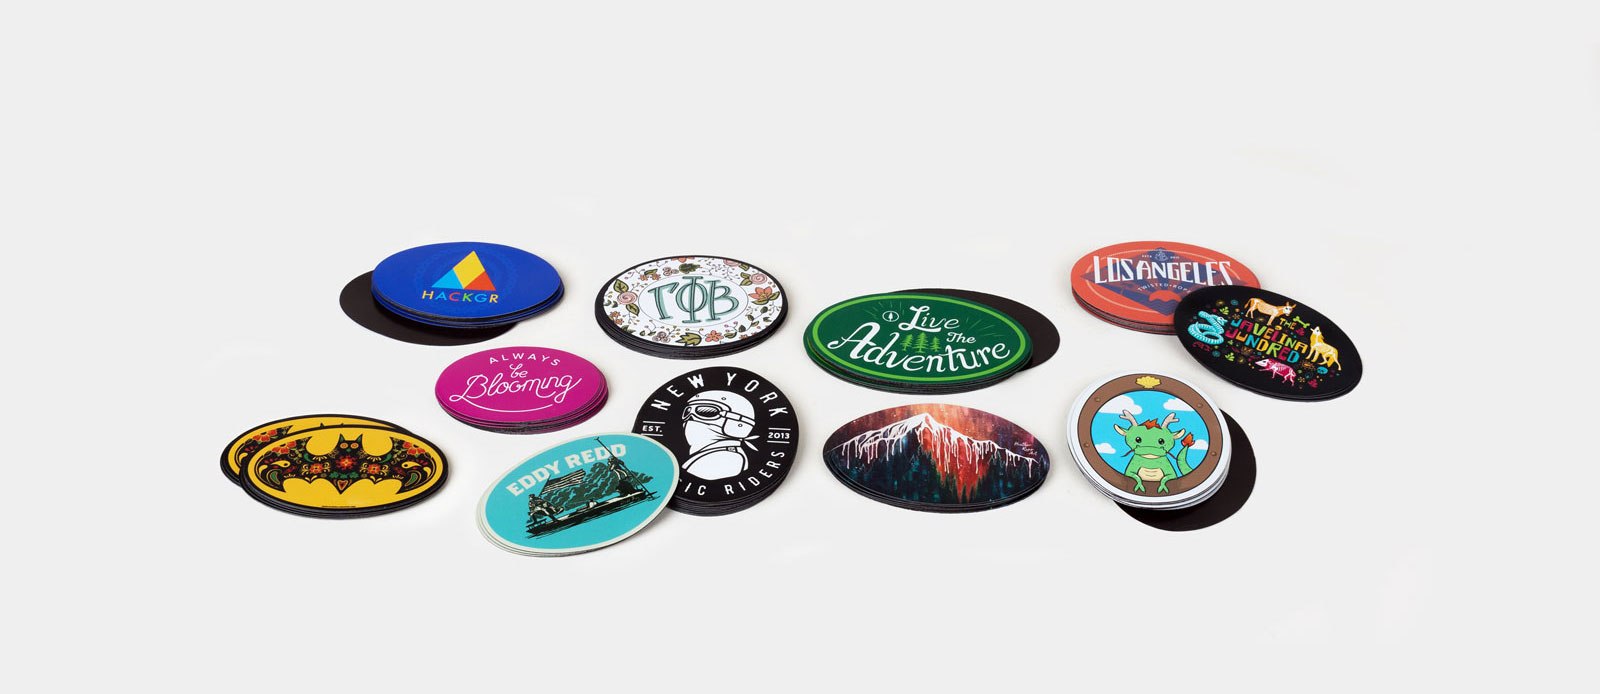 Oval magnets by Sticker Mule